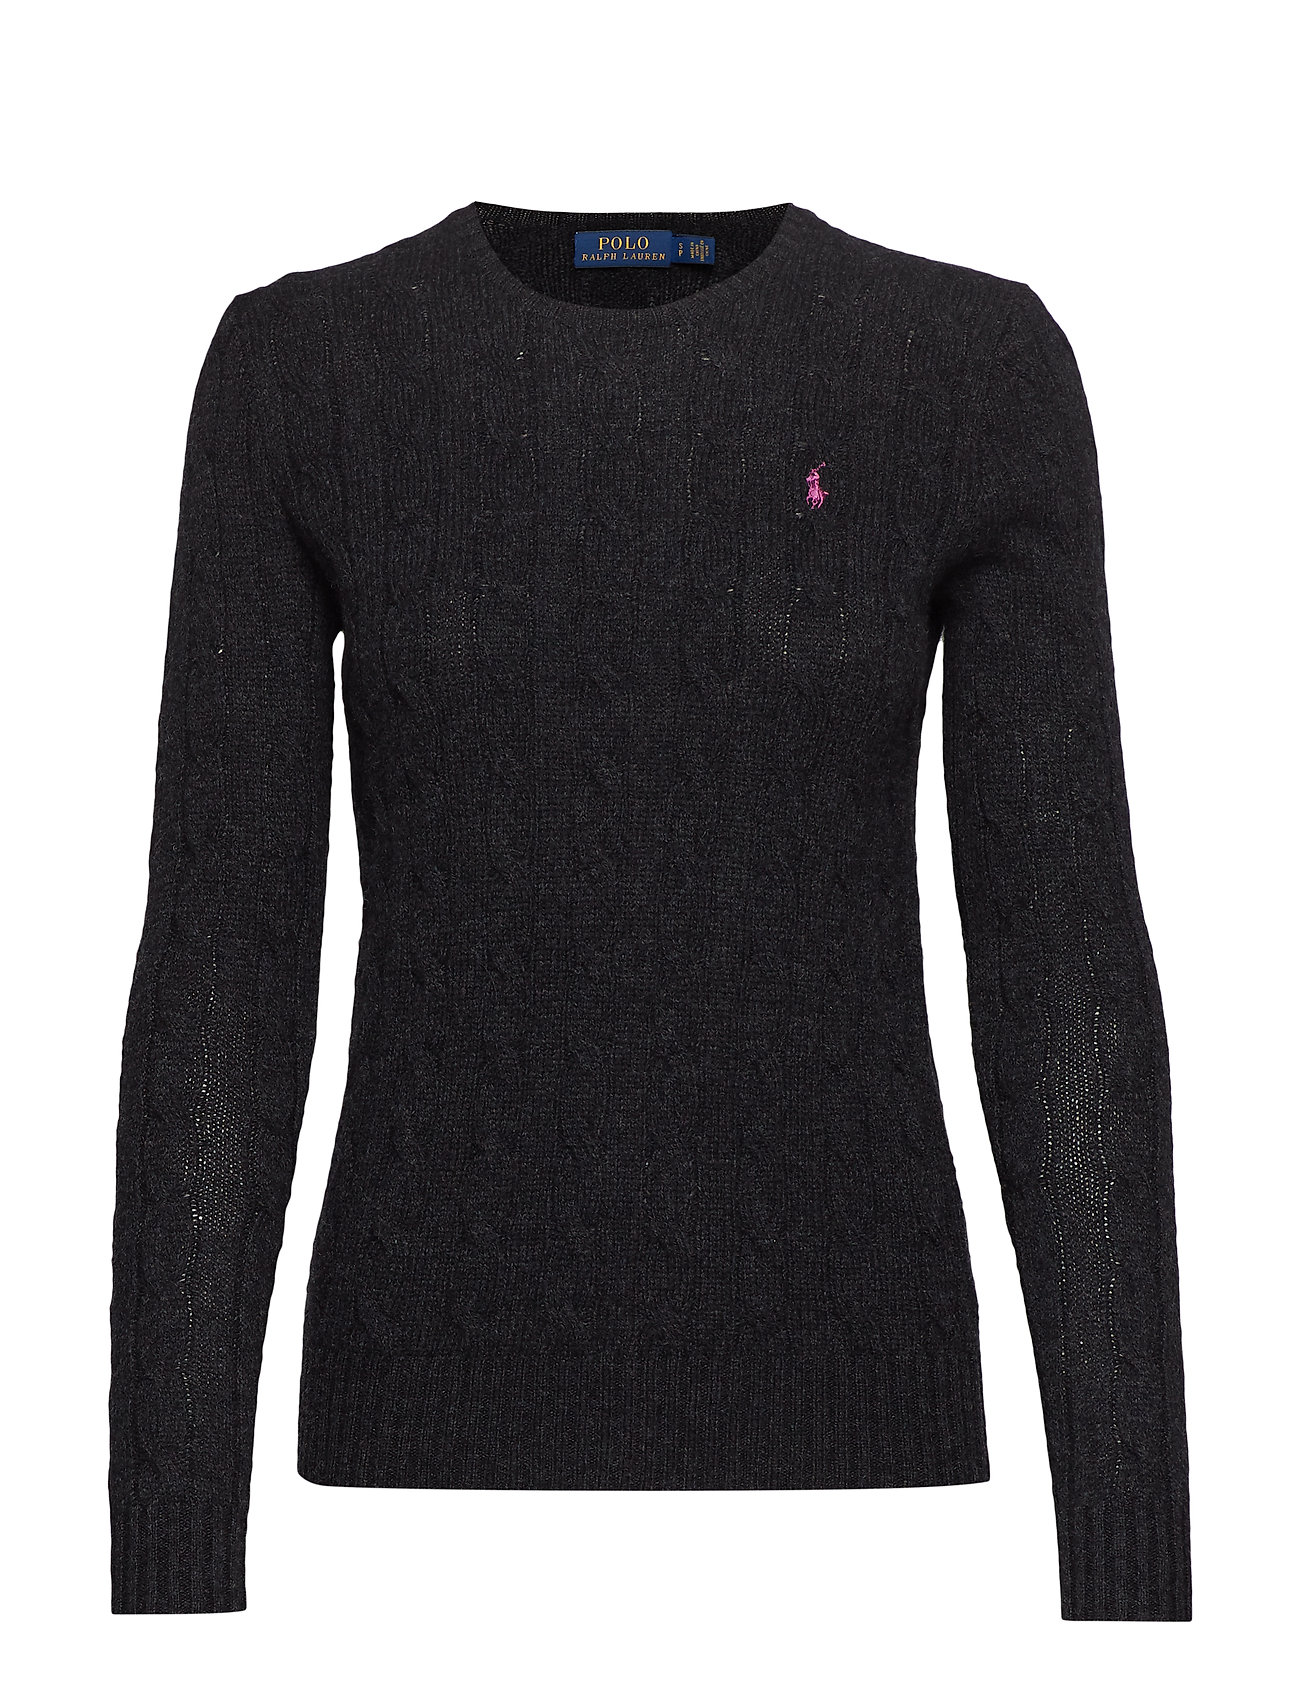 Polo Ralph Lauren Cable Wool-Cashmere Sweater - CHARCOAL HEATHER